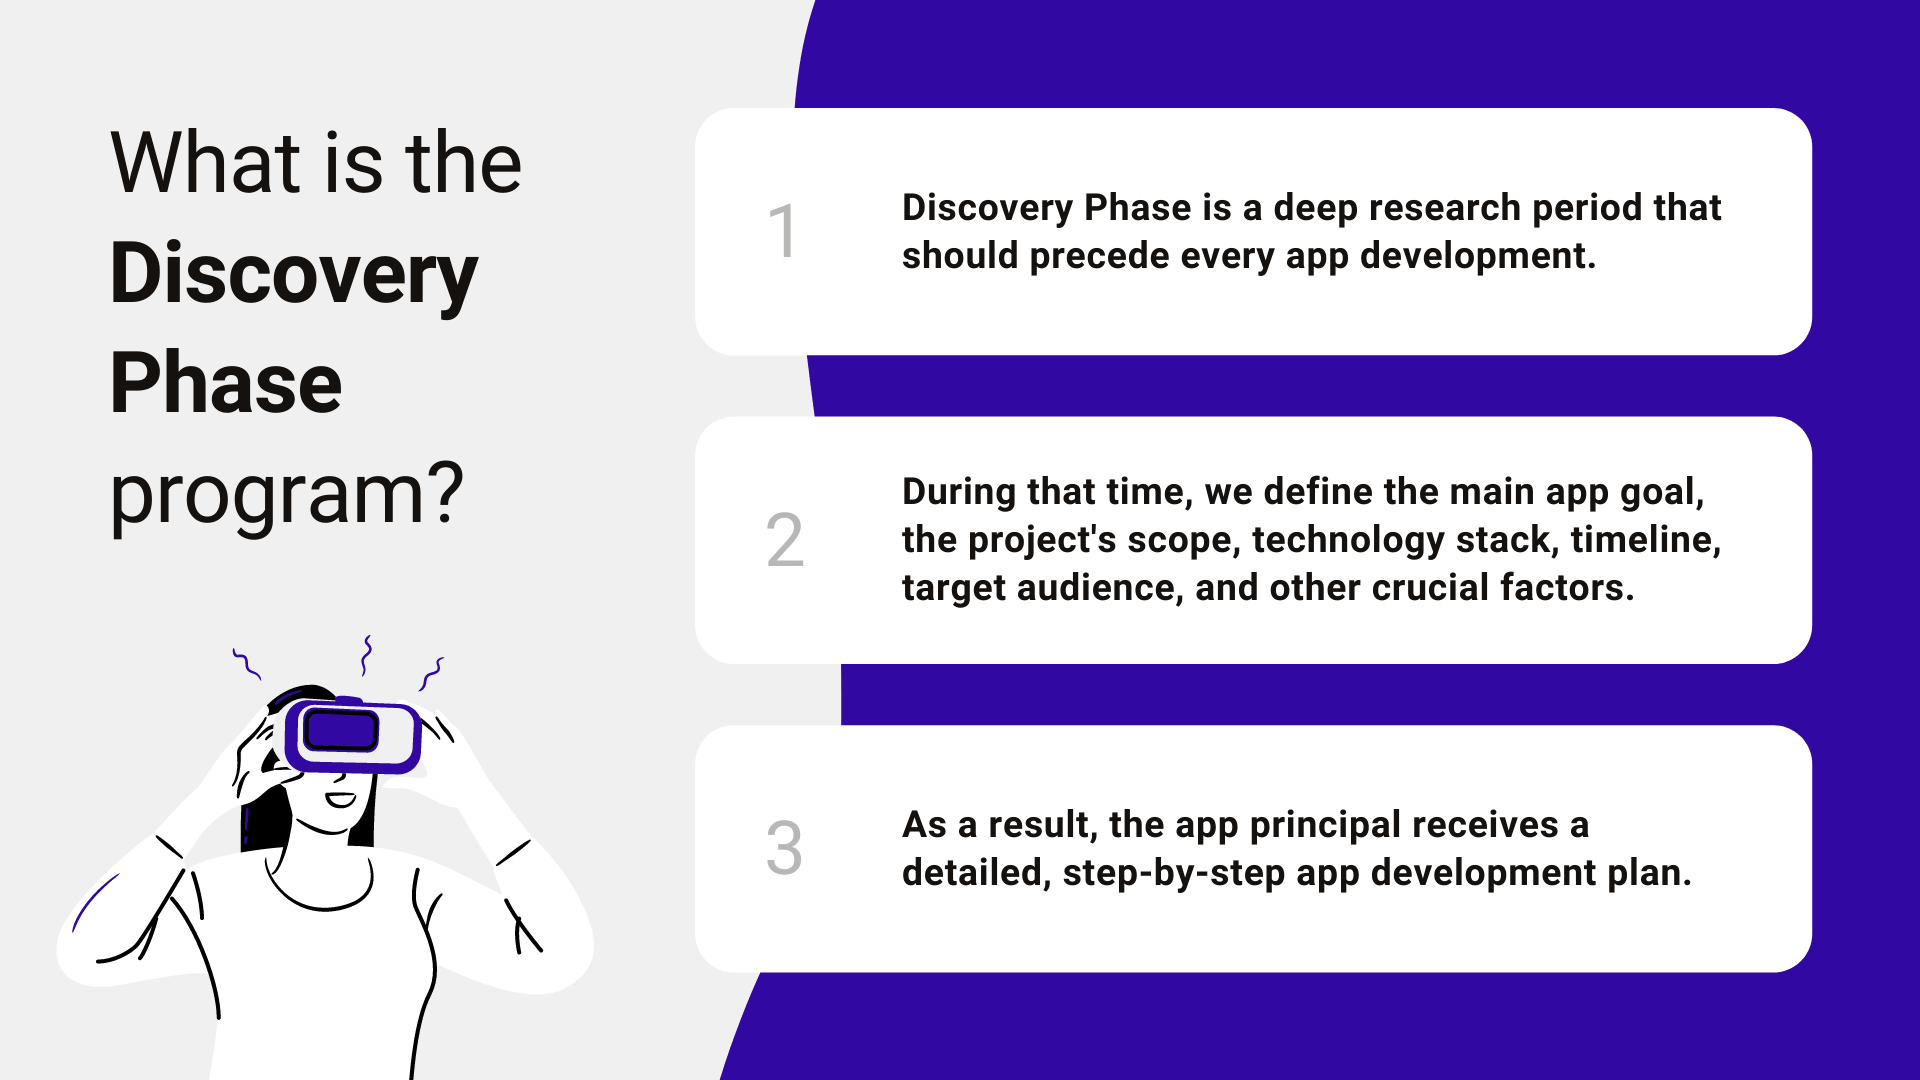 What is the Discovery Phase program?